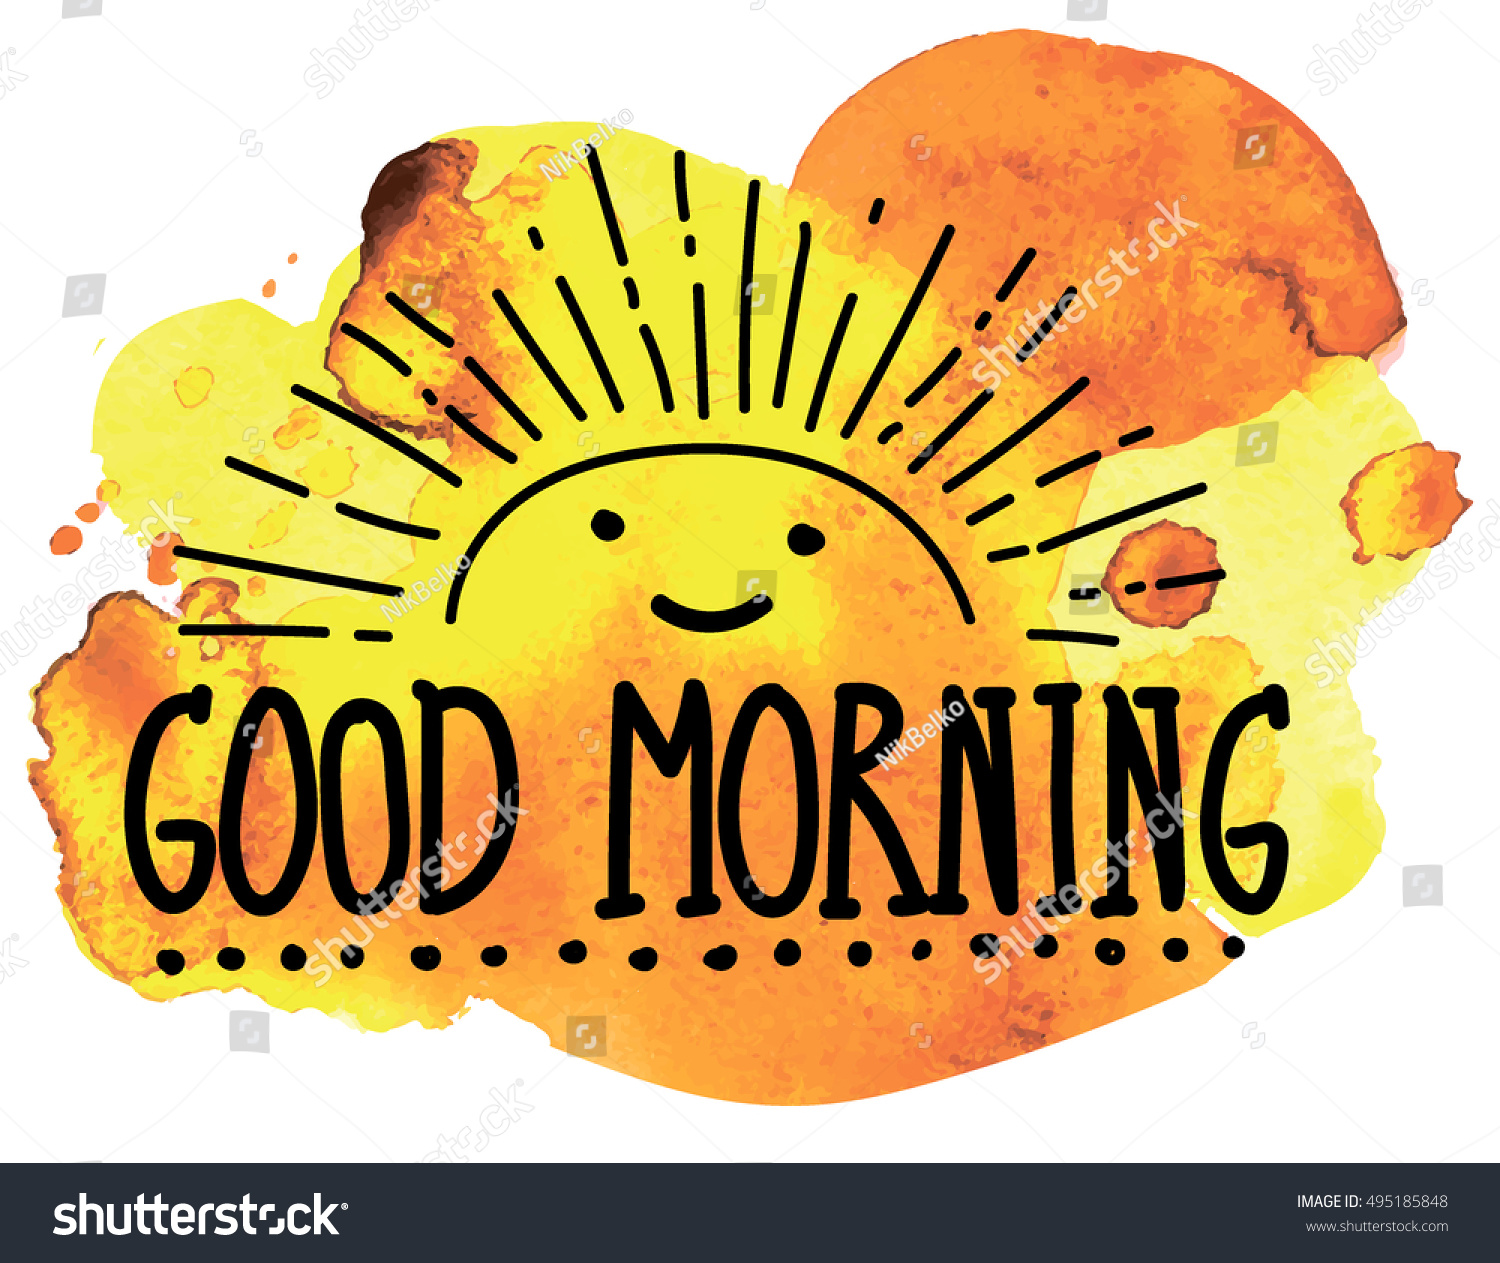 Good Morning Sunshine Letter : Good morning cute pattern sun letters stock vector